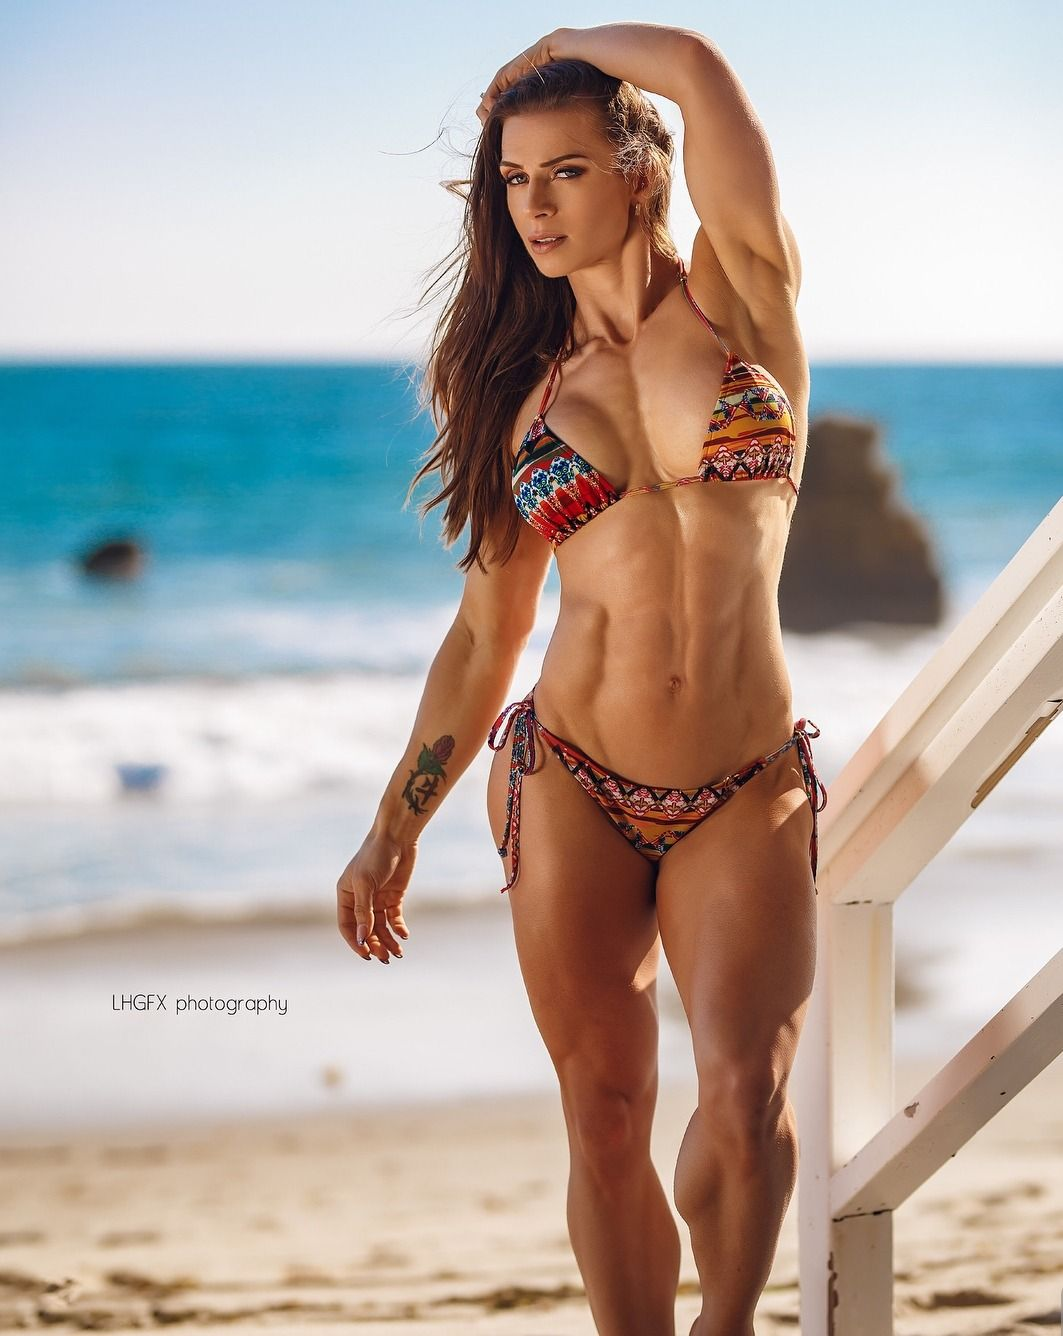 Beautiful Fit Babes Chulas 1 Pinterest Chicas Mujeres And - Fotos-chulas-de-chicas